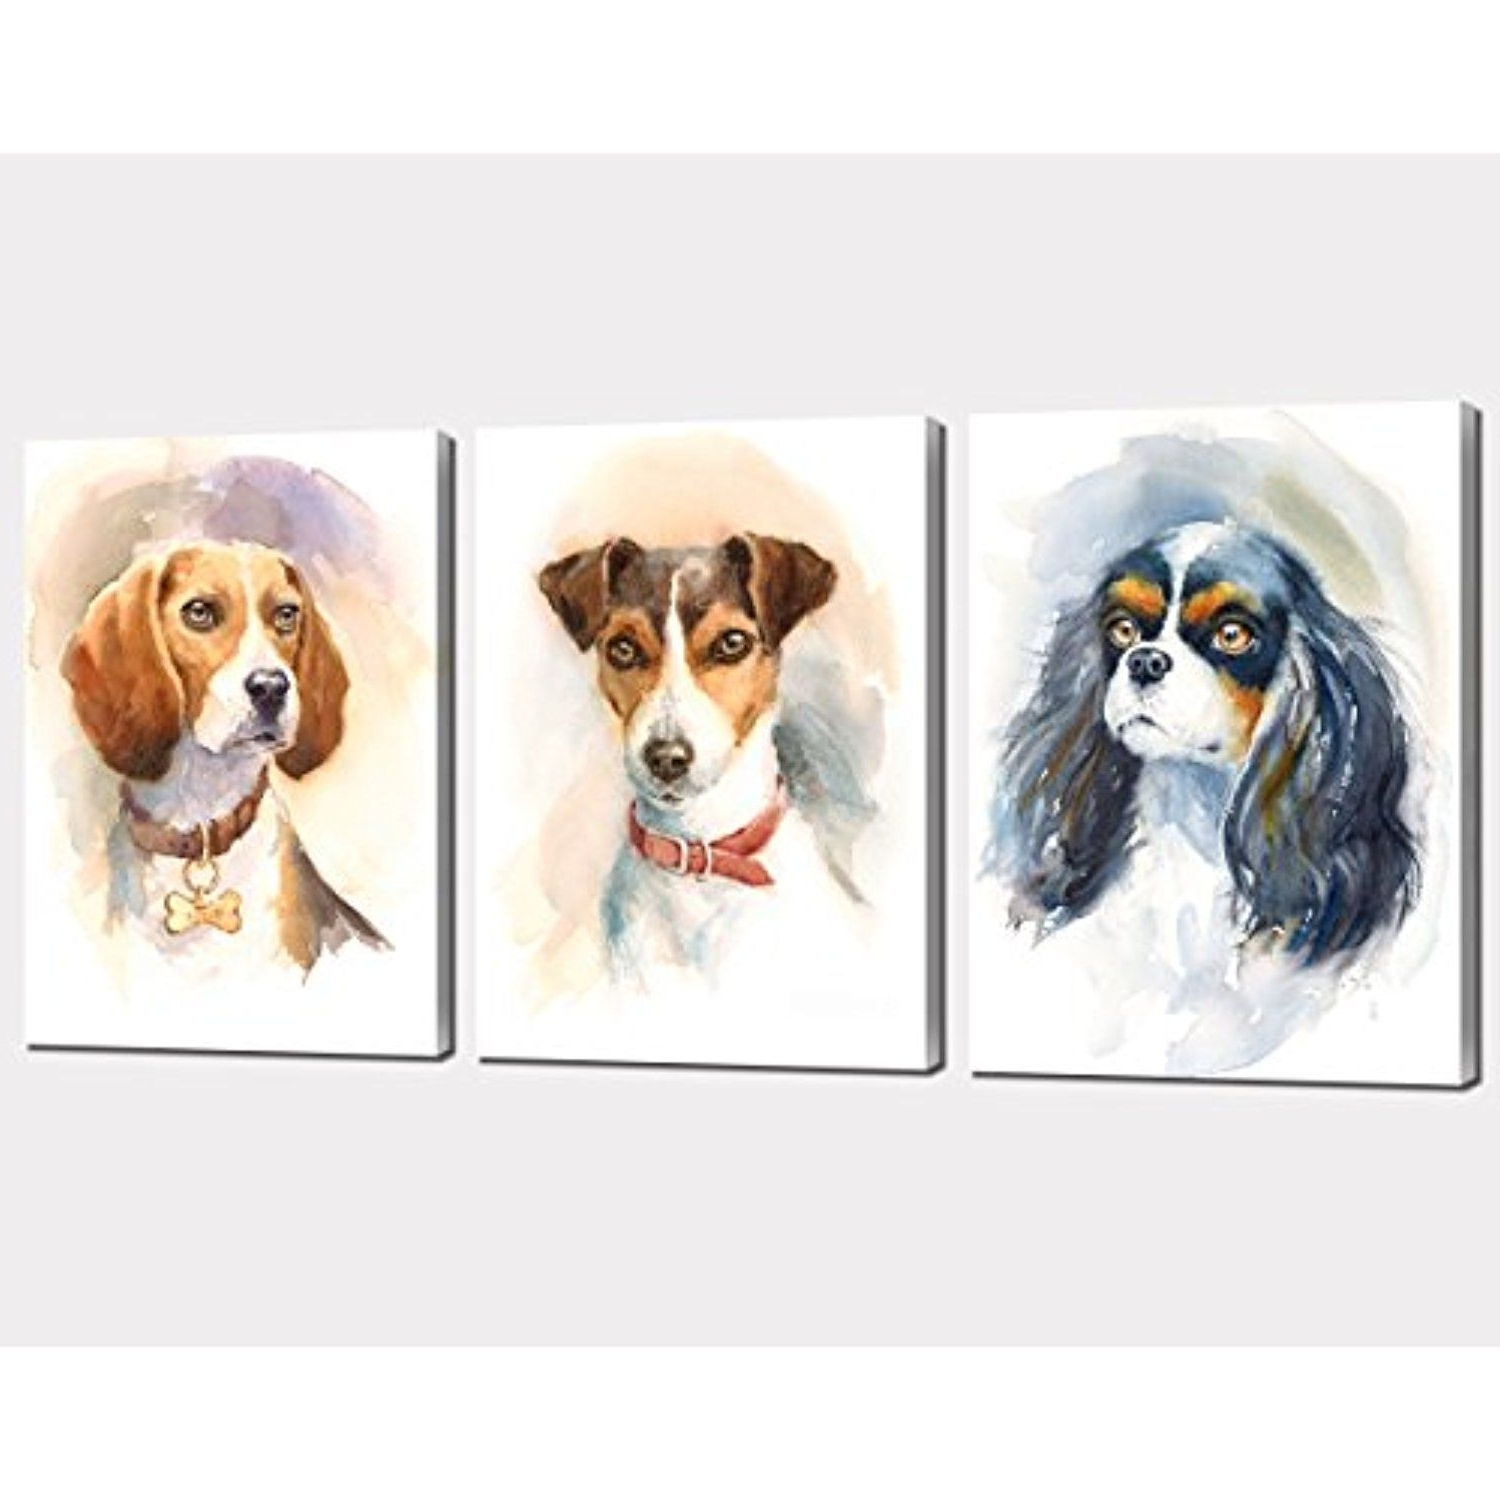 Nan Wind 3Pcs Modern Giclee Dogs Canvas Prints Cute Animals Wall Within Well Known Dogs Canvas Wall Art (Gallery 10 of 15)